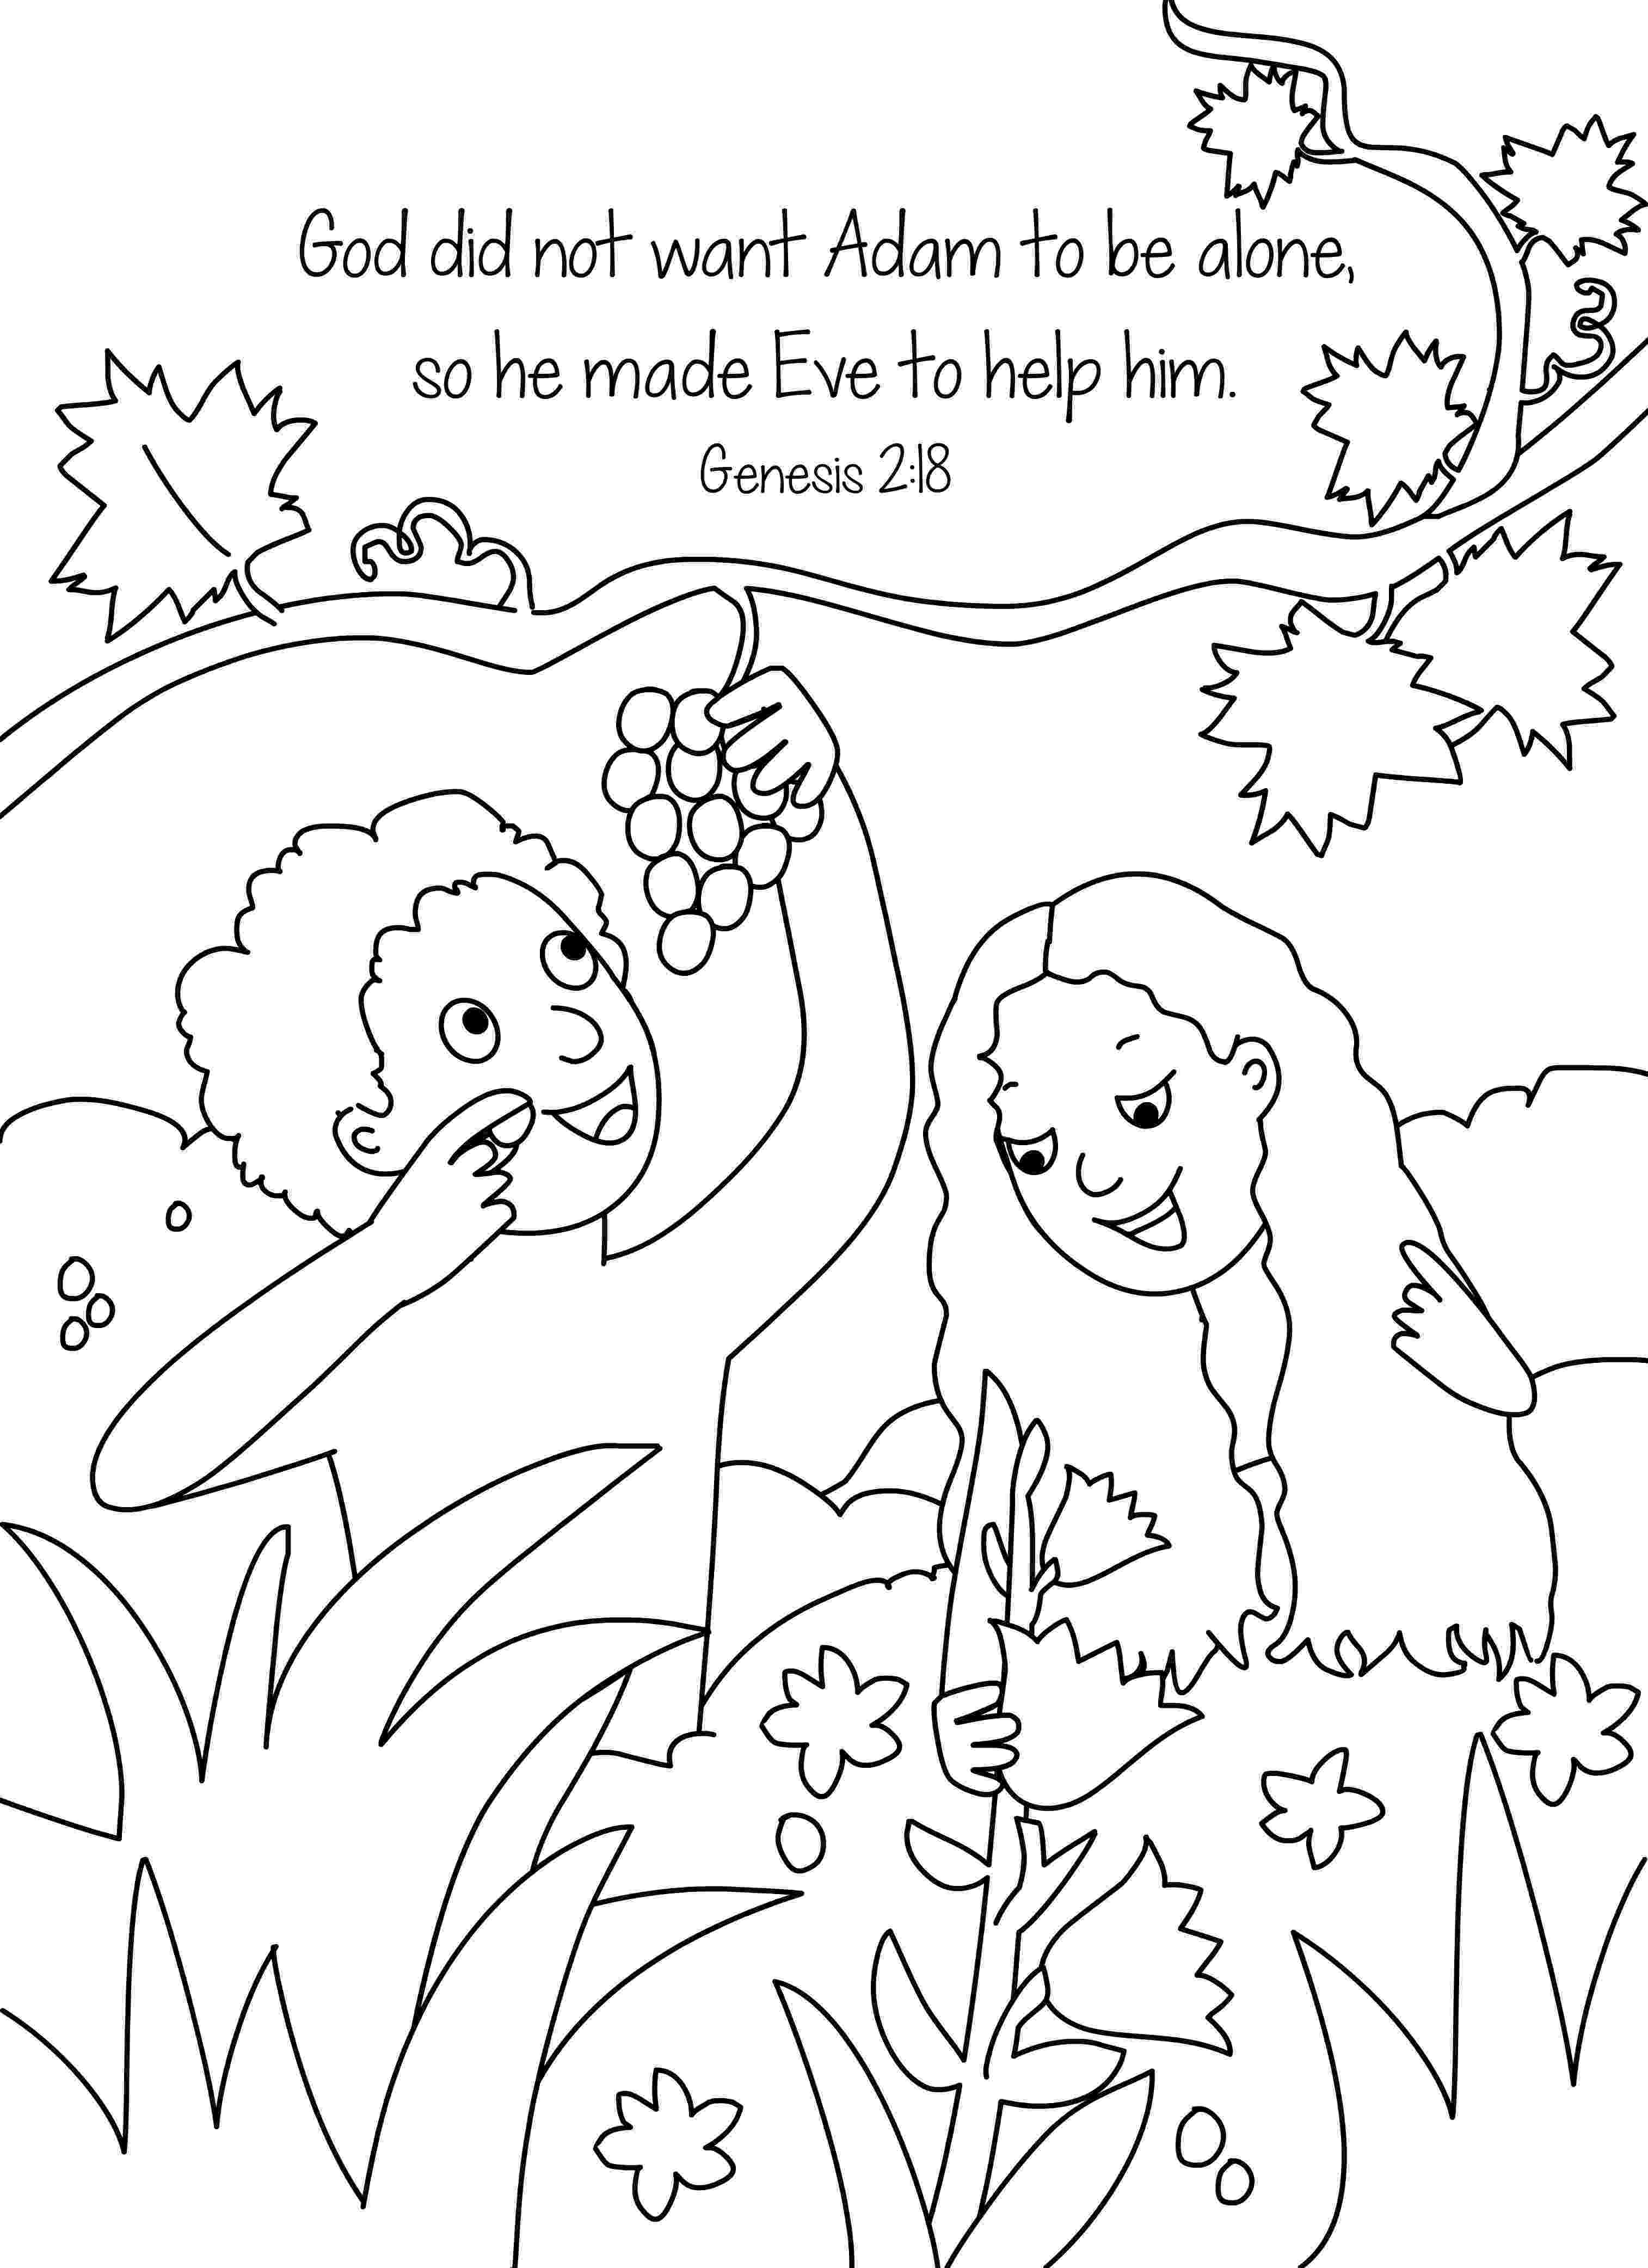 adam and eve coloring pages fall of adam and eve coloring page free printable eve and adam coloring pages